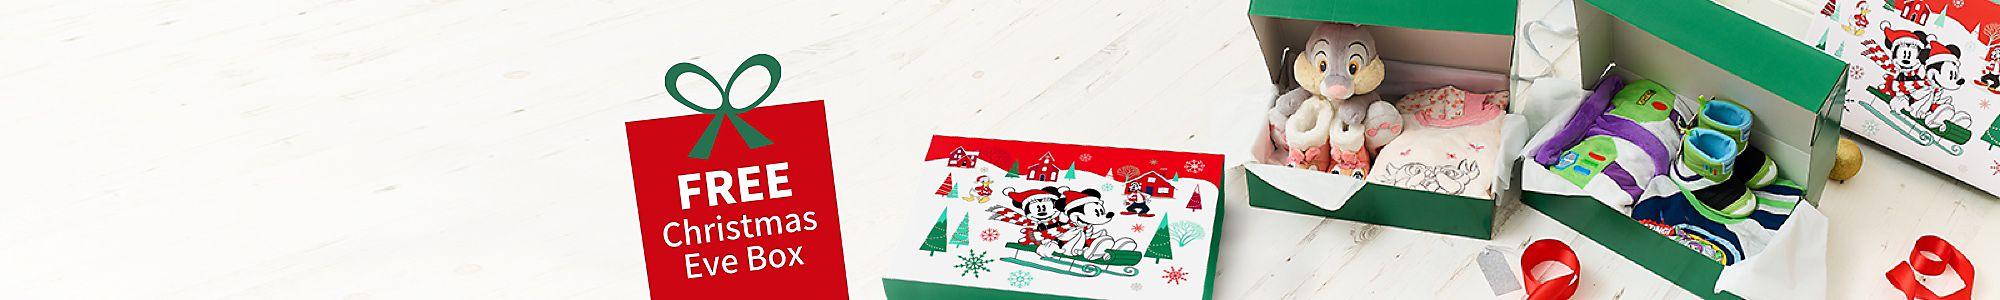 Free Christmas Eve Box When you buy any 2 selected Sleep Shop items SHOP NOW